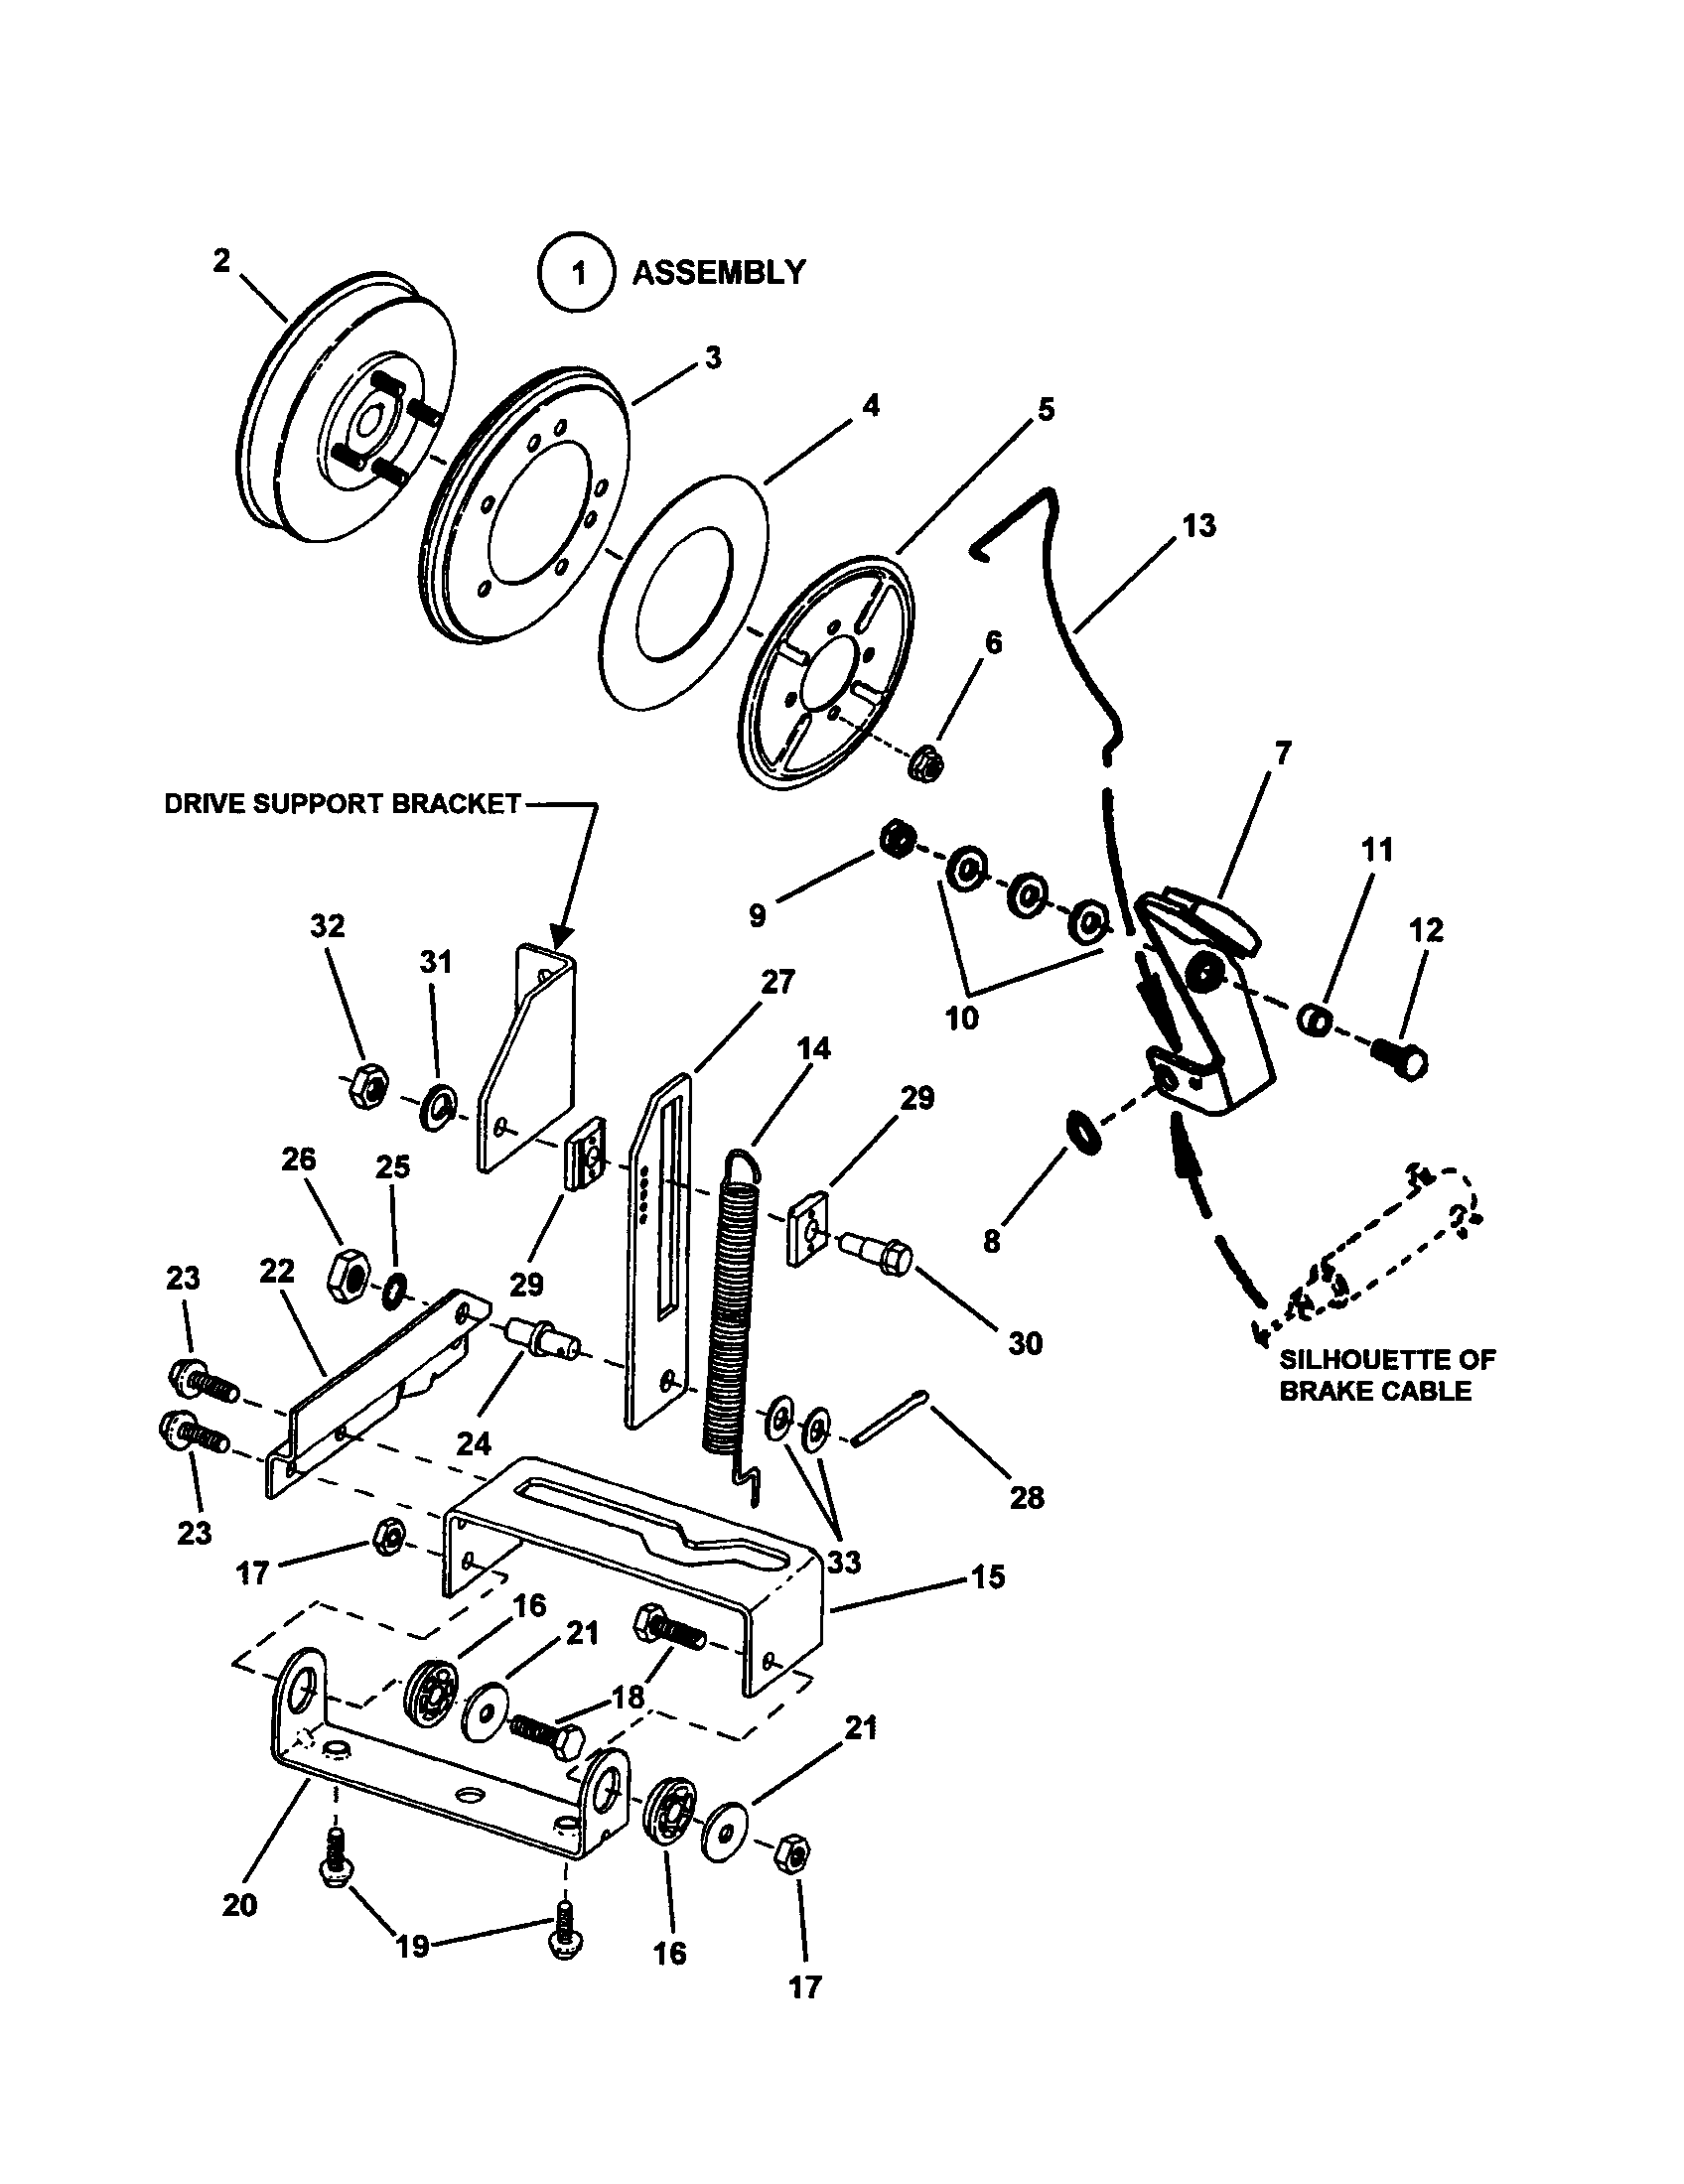 SMOOTH CLUTCH (SERIES 19) Diagram & Parts List for Model